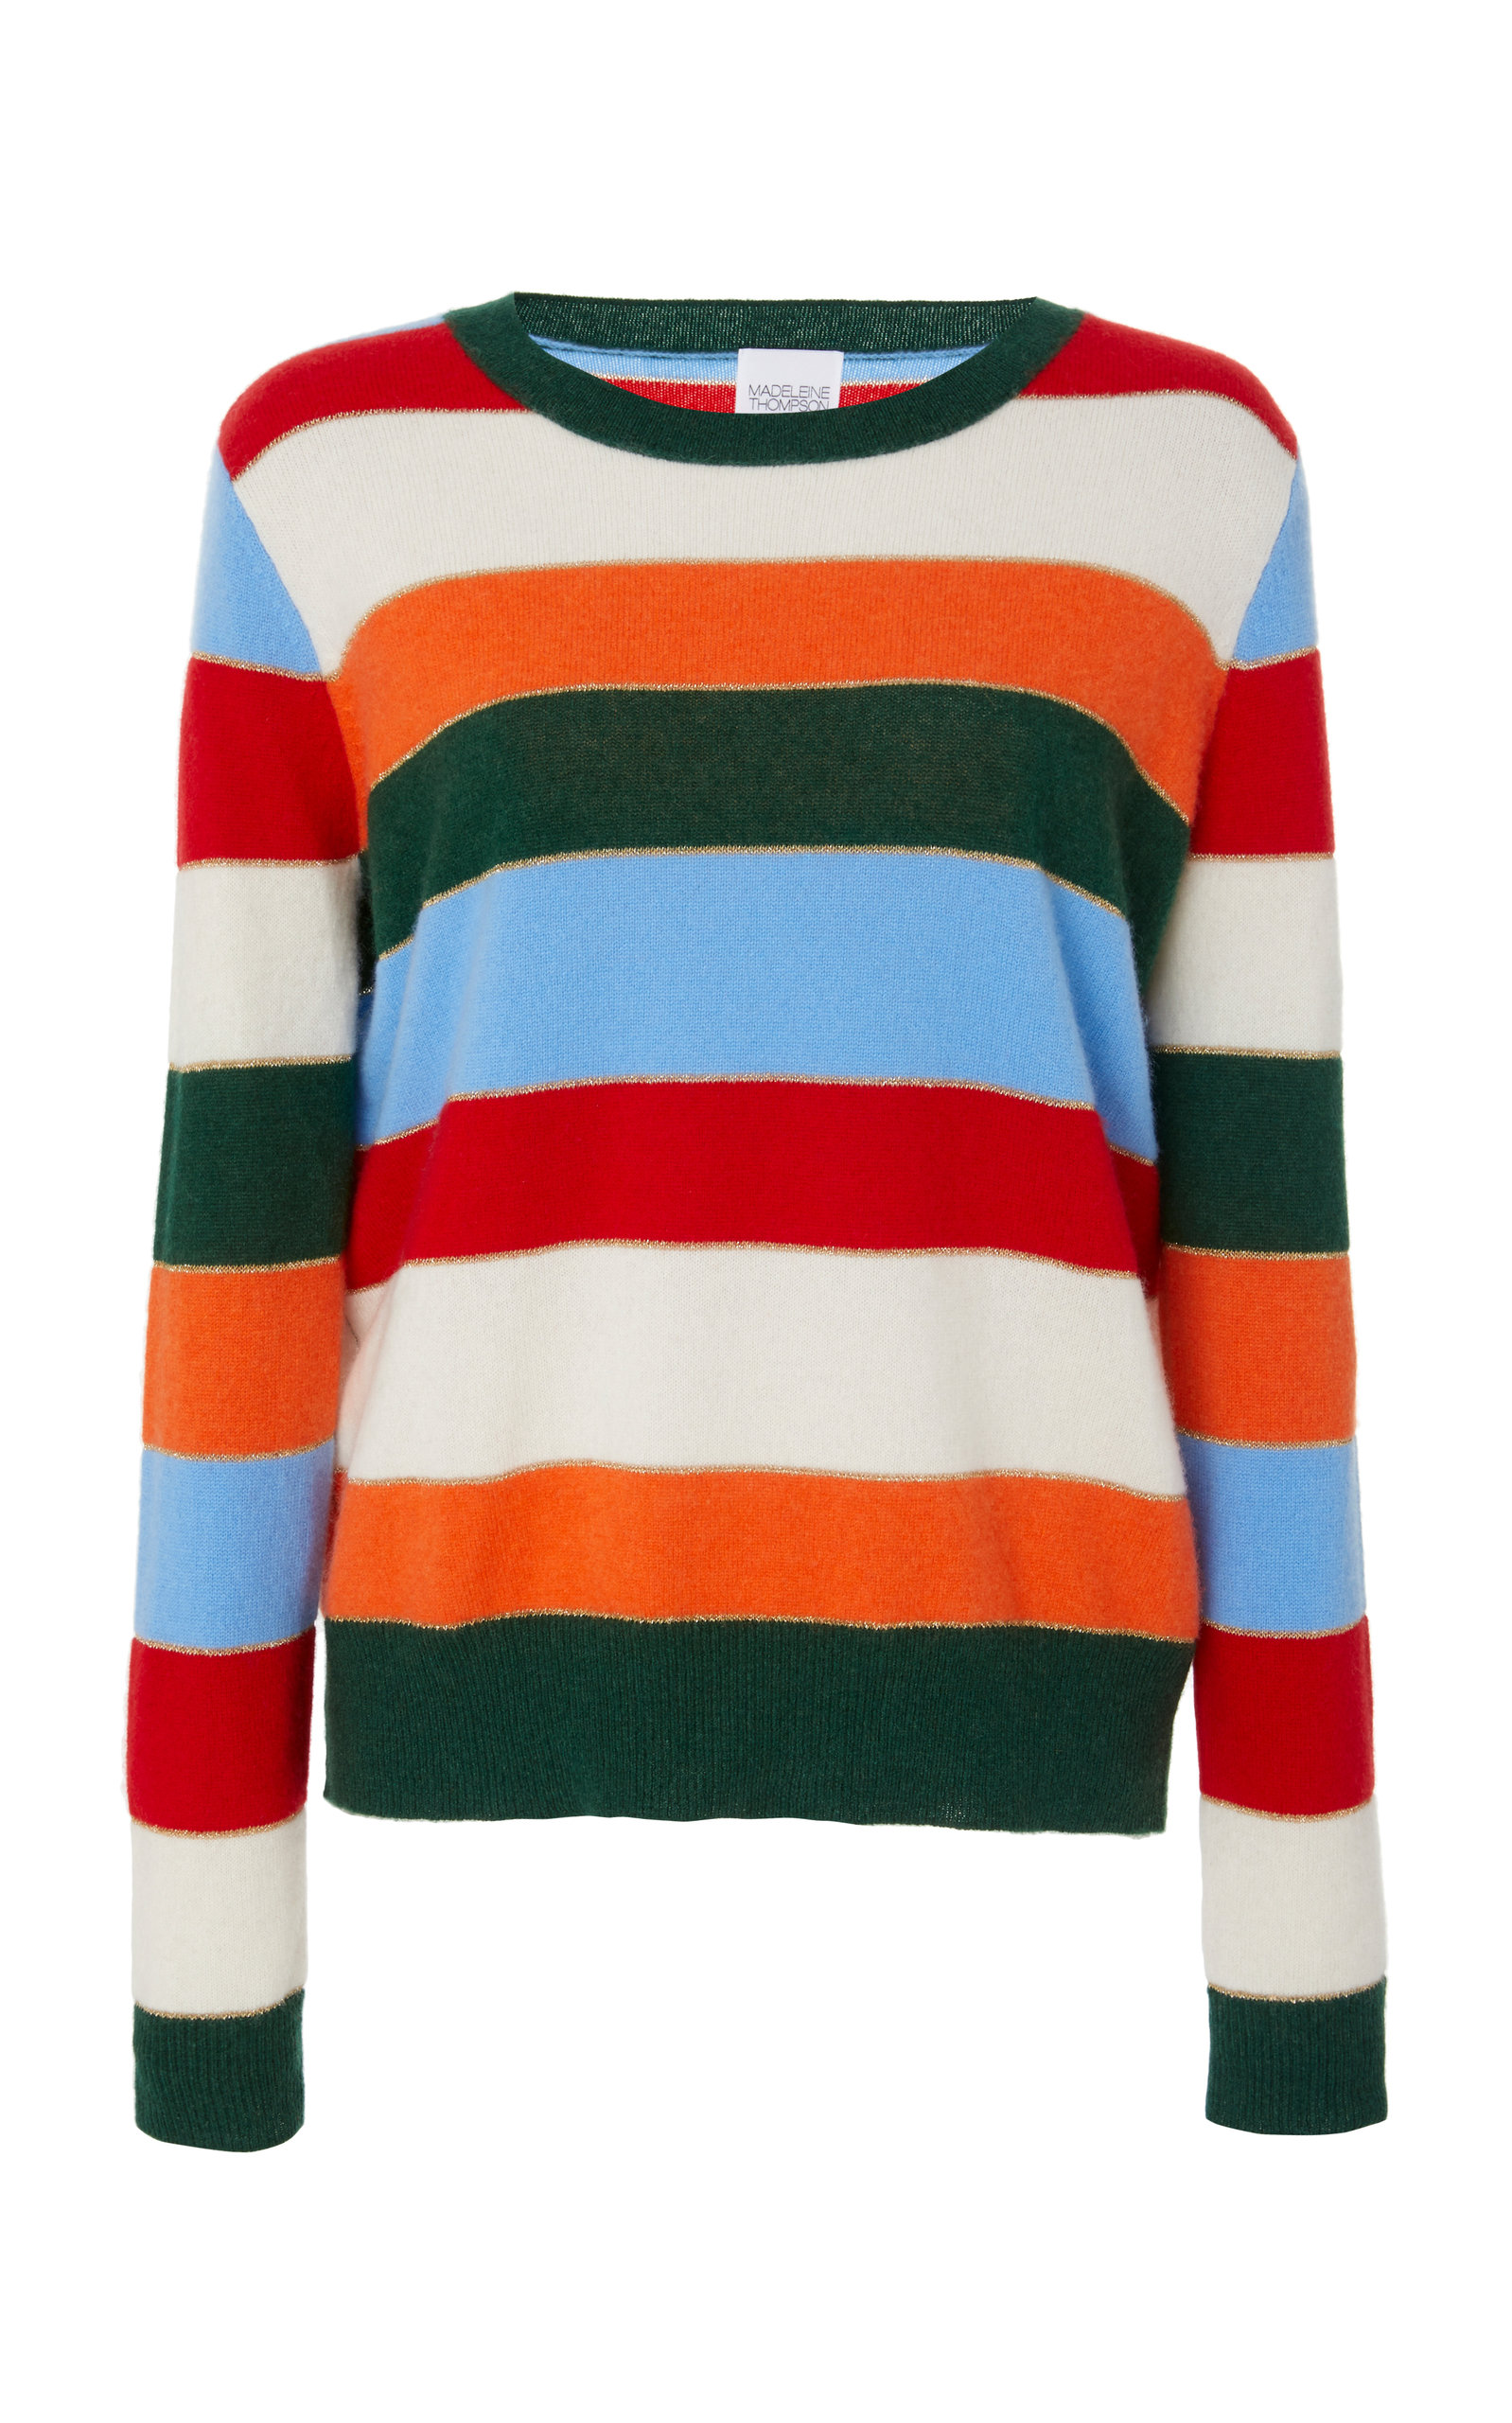 MADELEINE THOMPSON LUCCA STRIPED CASHMERE SWEATER